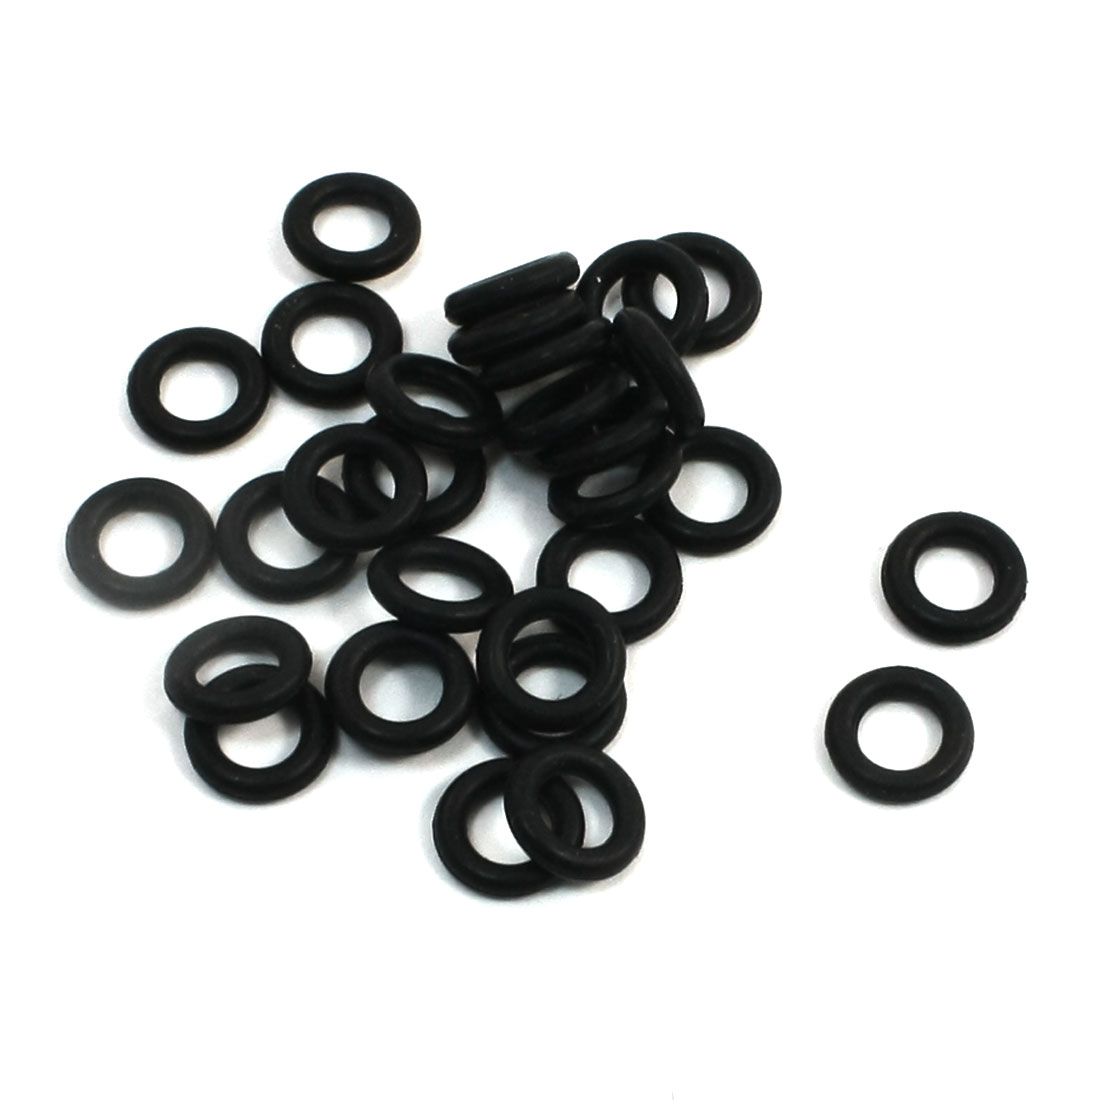 UXCELL 7Mm X 4Mm X 1.5Mm Rubber O Rings Oil Seal Gasket Washer Replacement 30 Pcs(China)